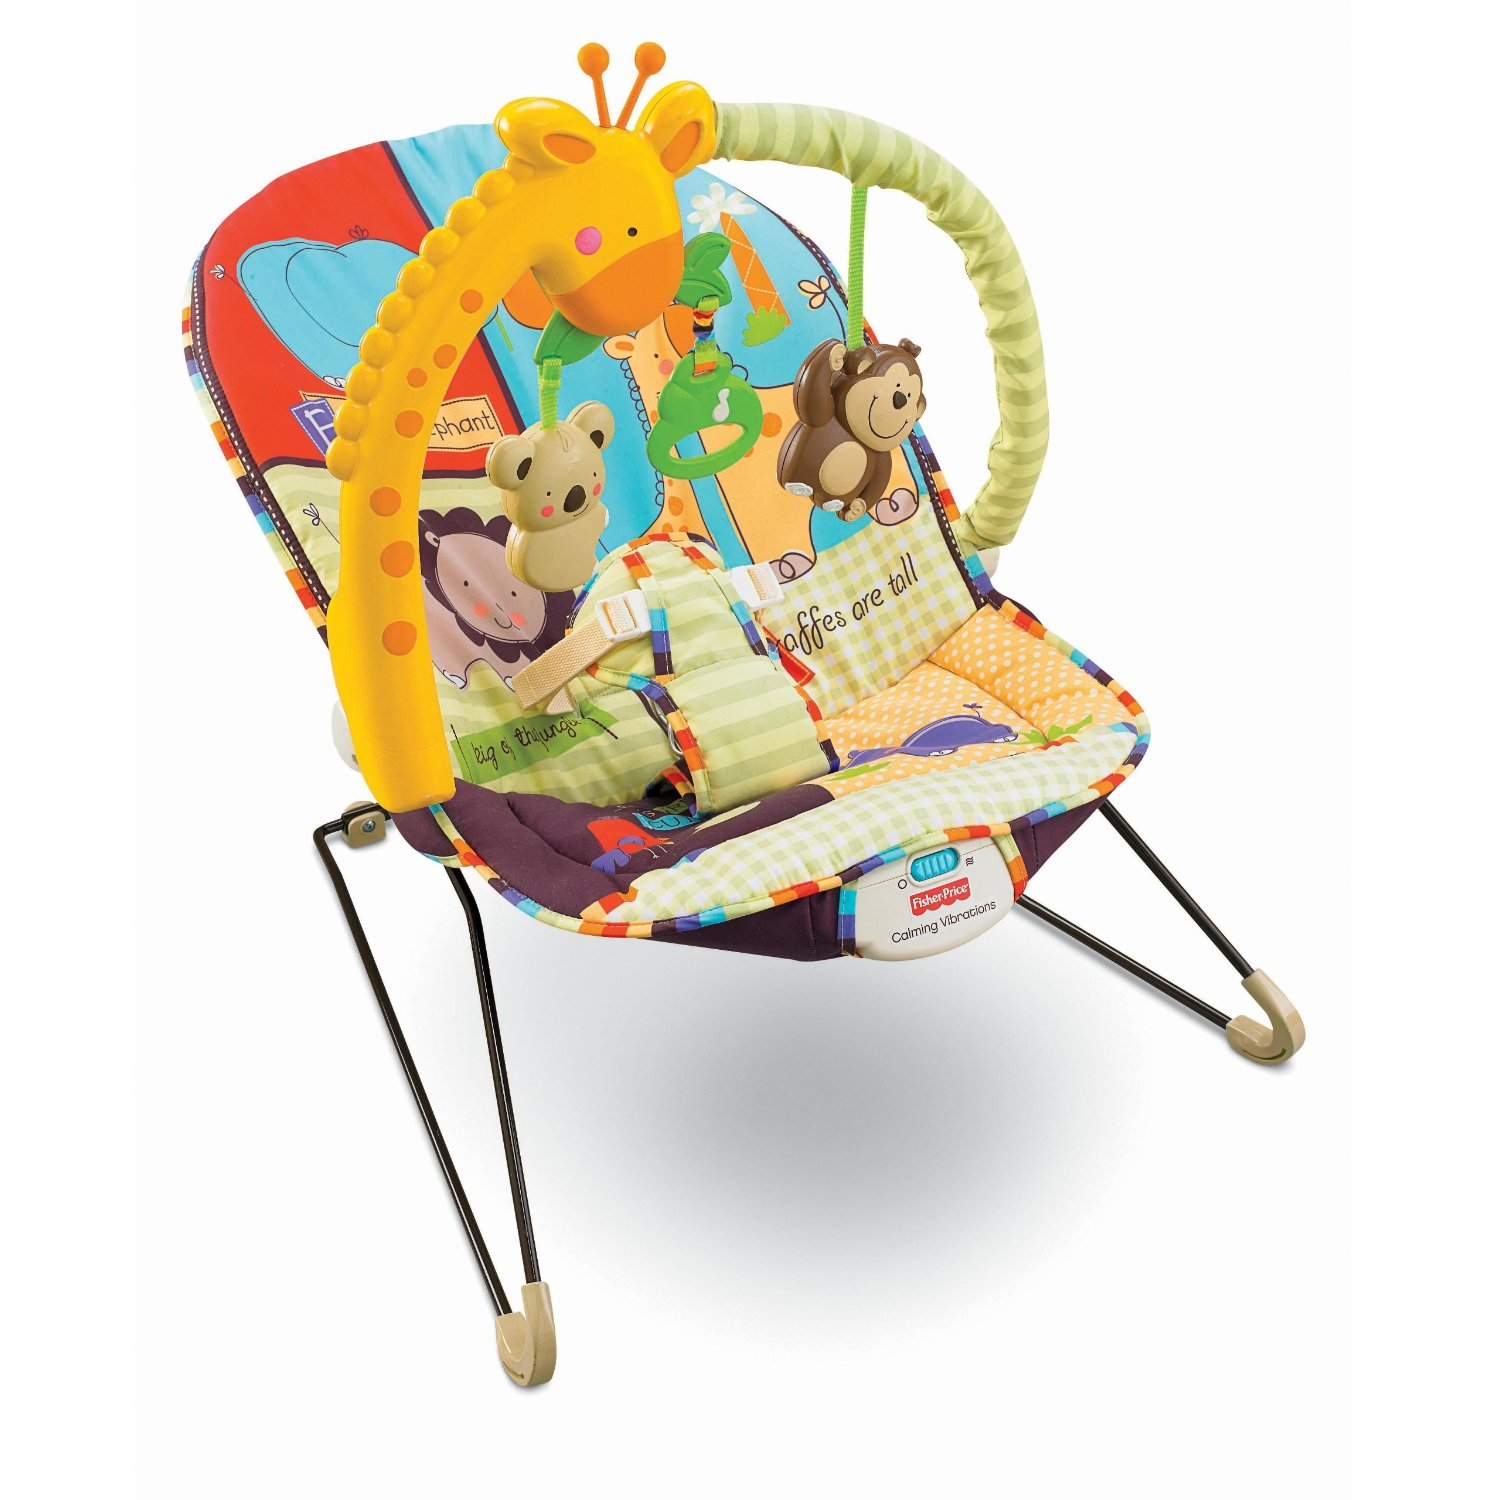 Next Stop Another Baby Top 10 List Baby Chair Swing Bouncer